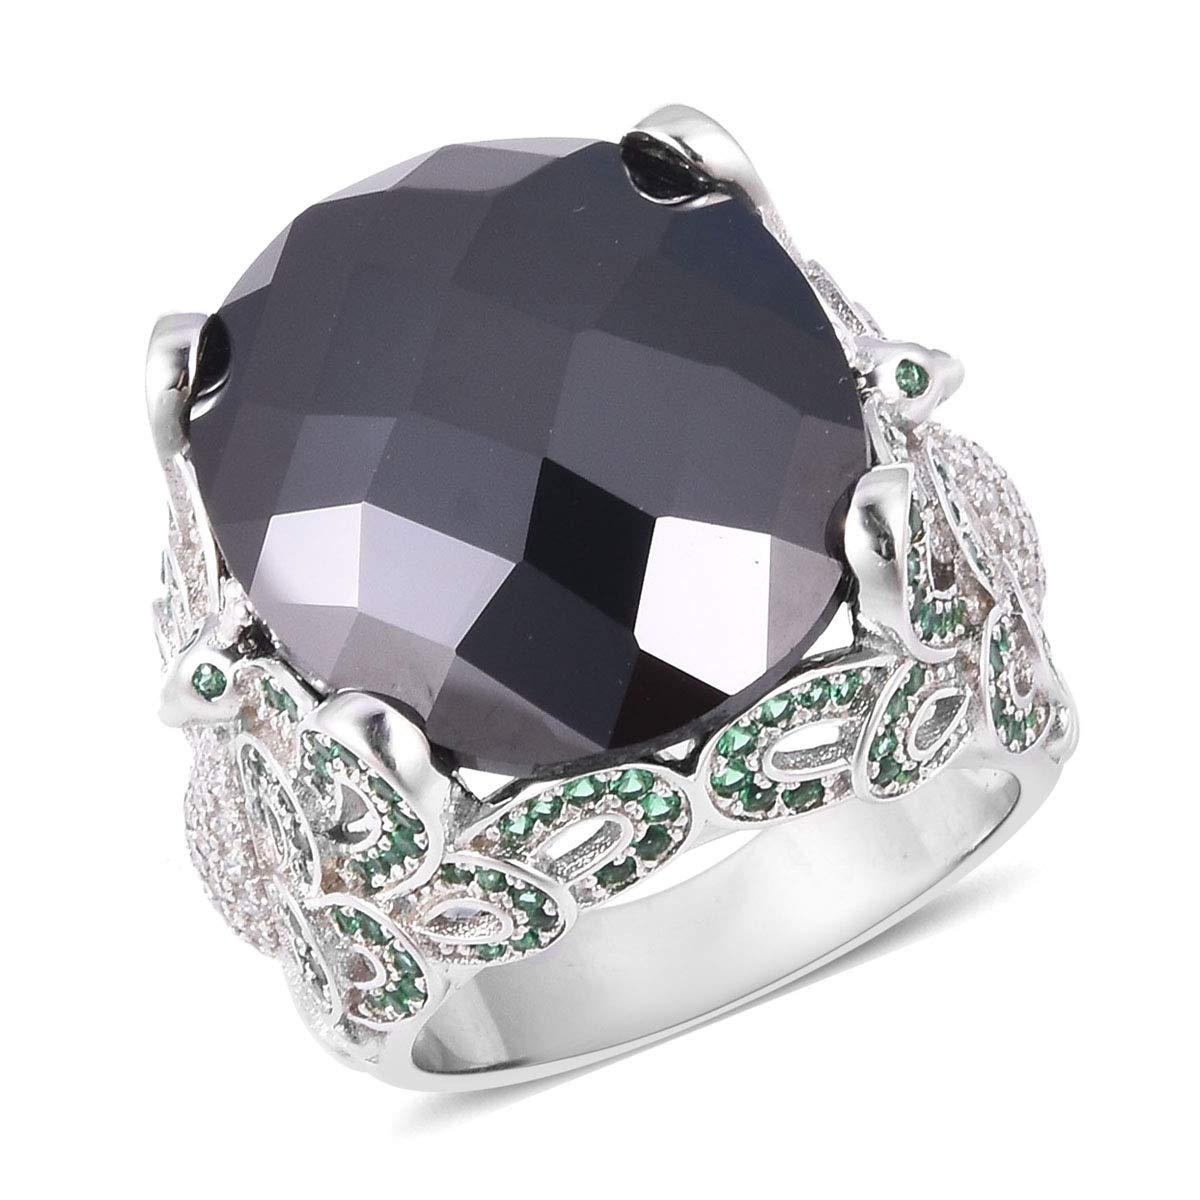 Shop LC Delivering Joy Statement Ring Black Cubic Zirconia CZ Green Cubic Zirconia CZ Jewelry for Women Size 7